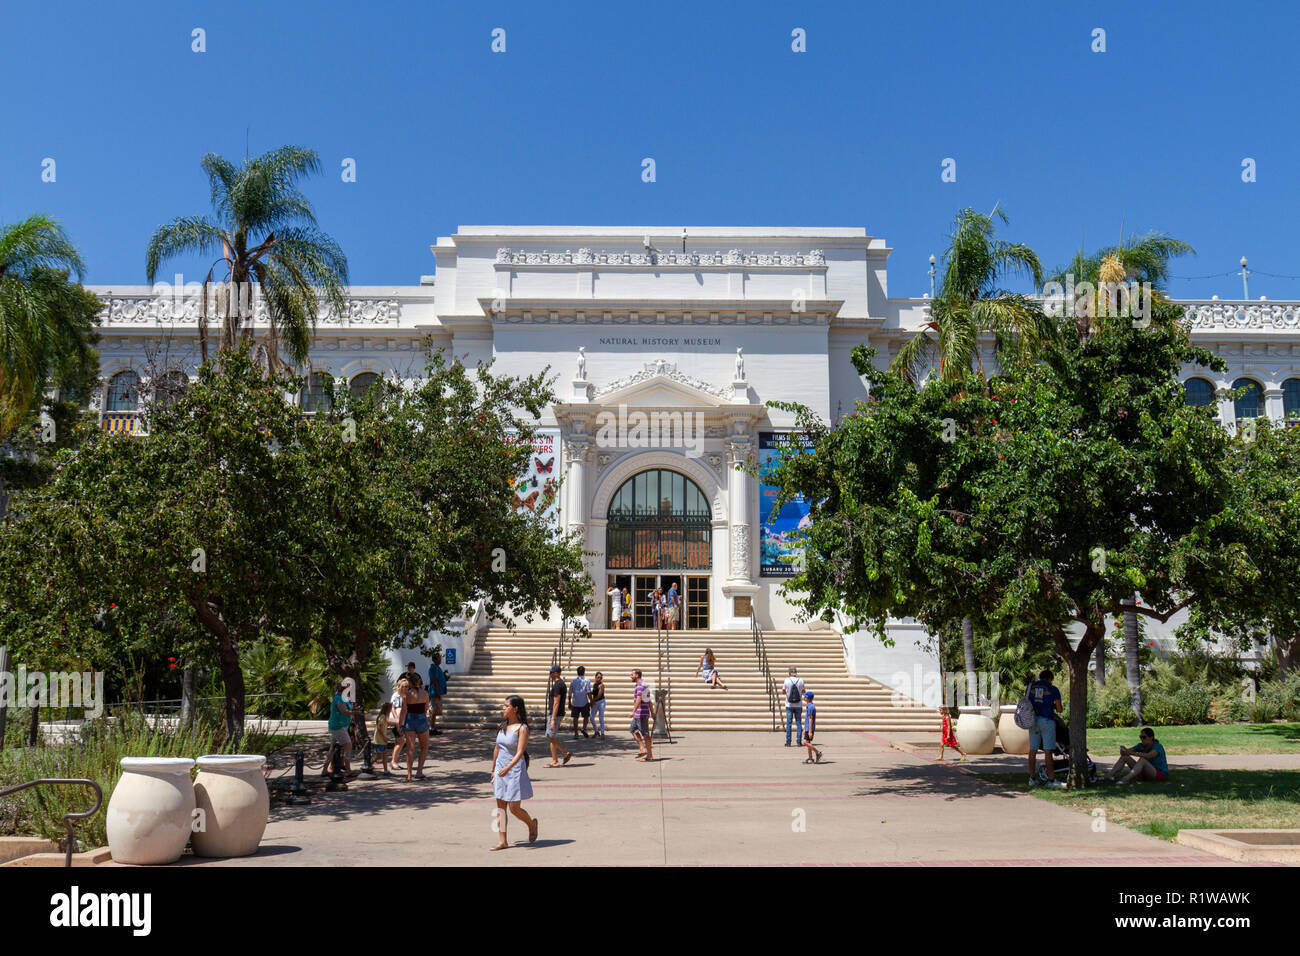 The San Diego Natural History Museum In Balboa Park San Diego